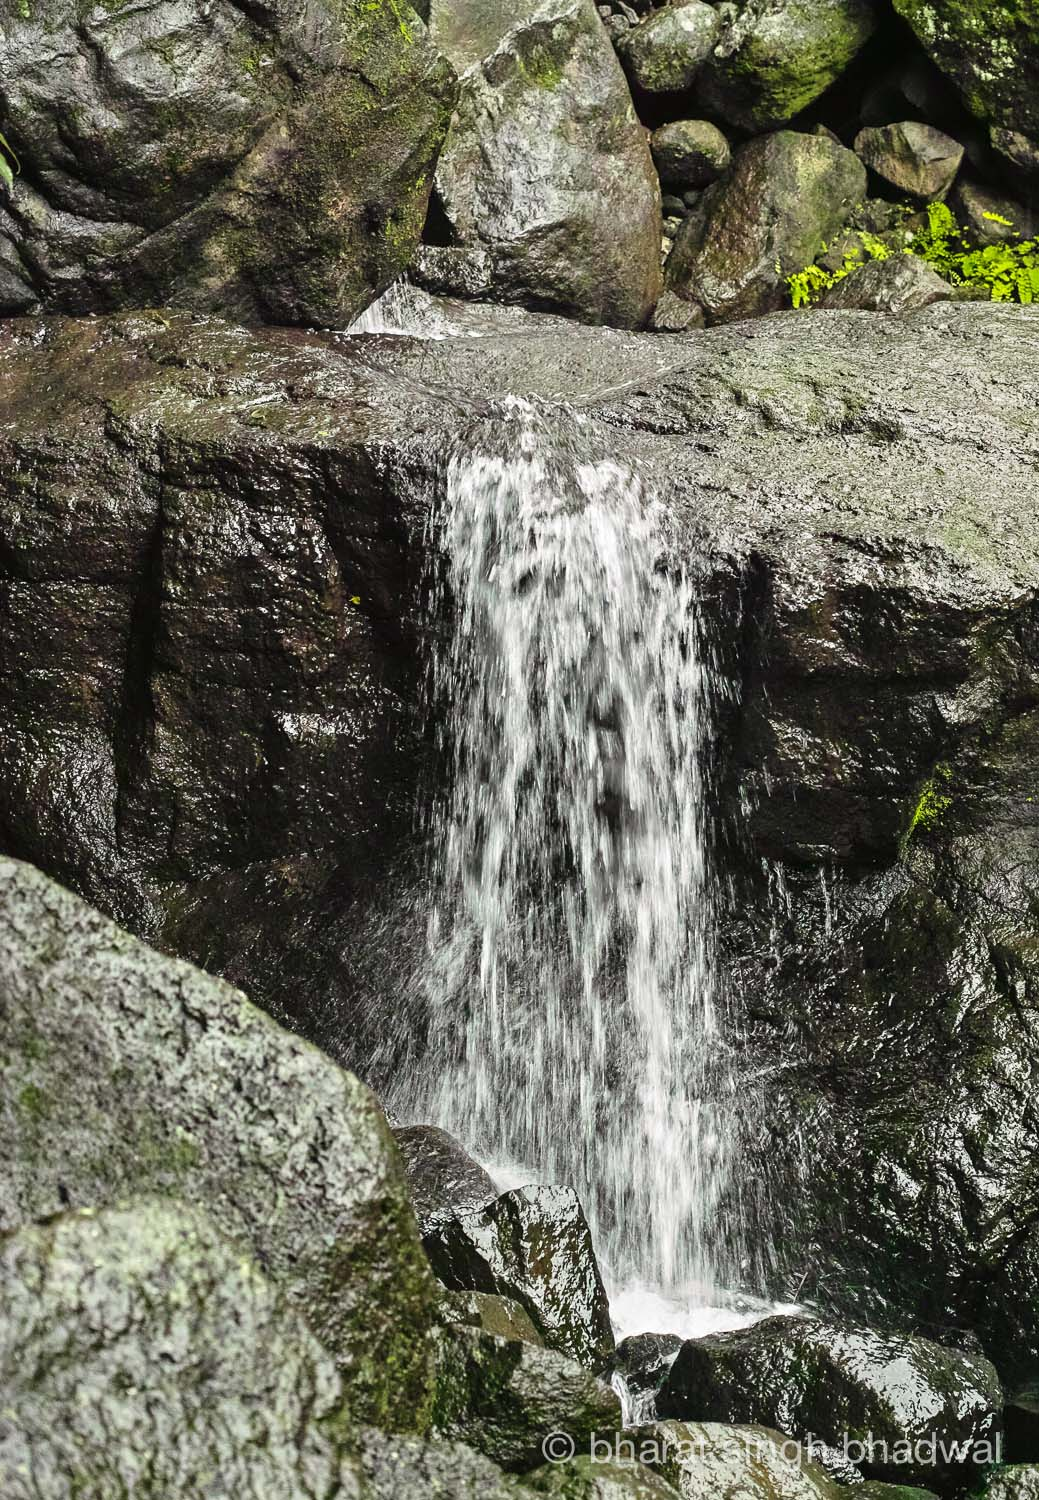 Waterfalls dot the Ganesh Ghat route